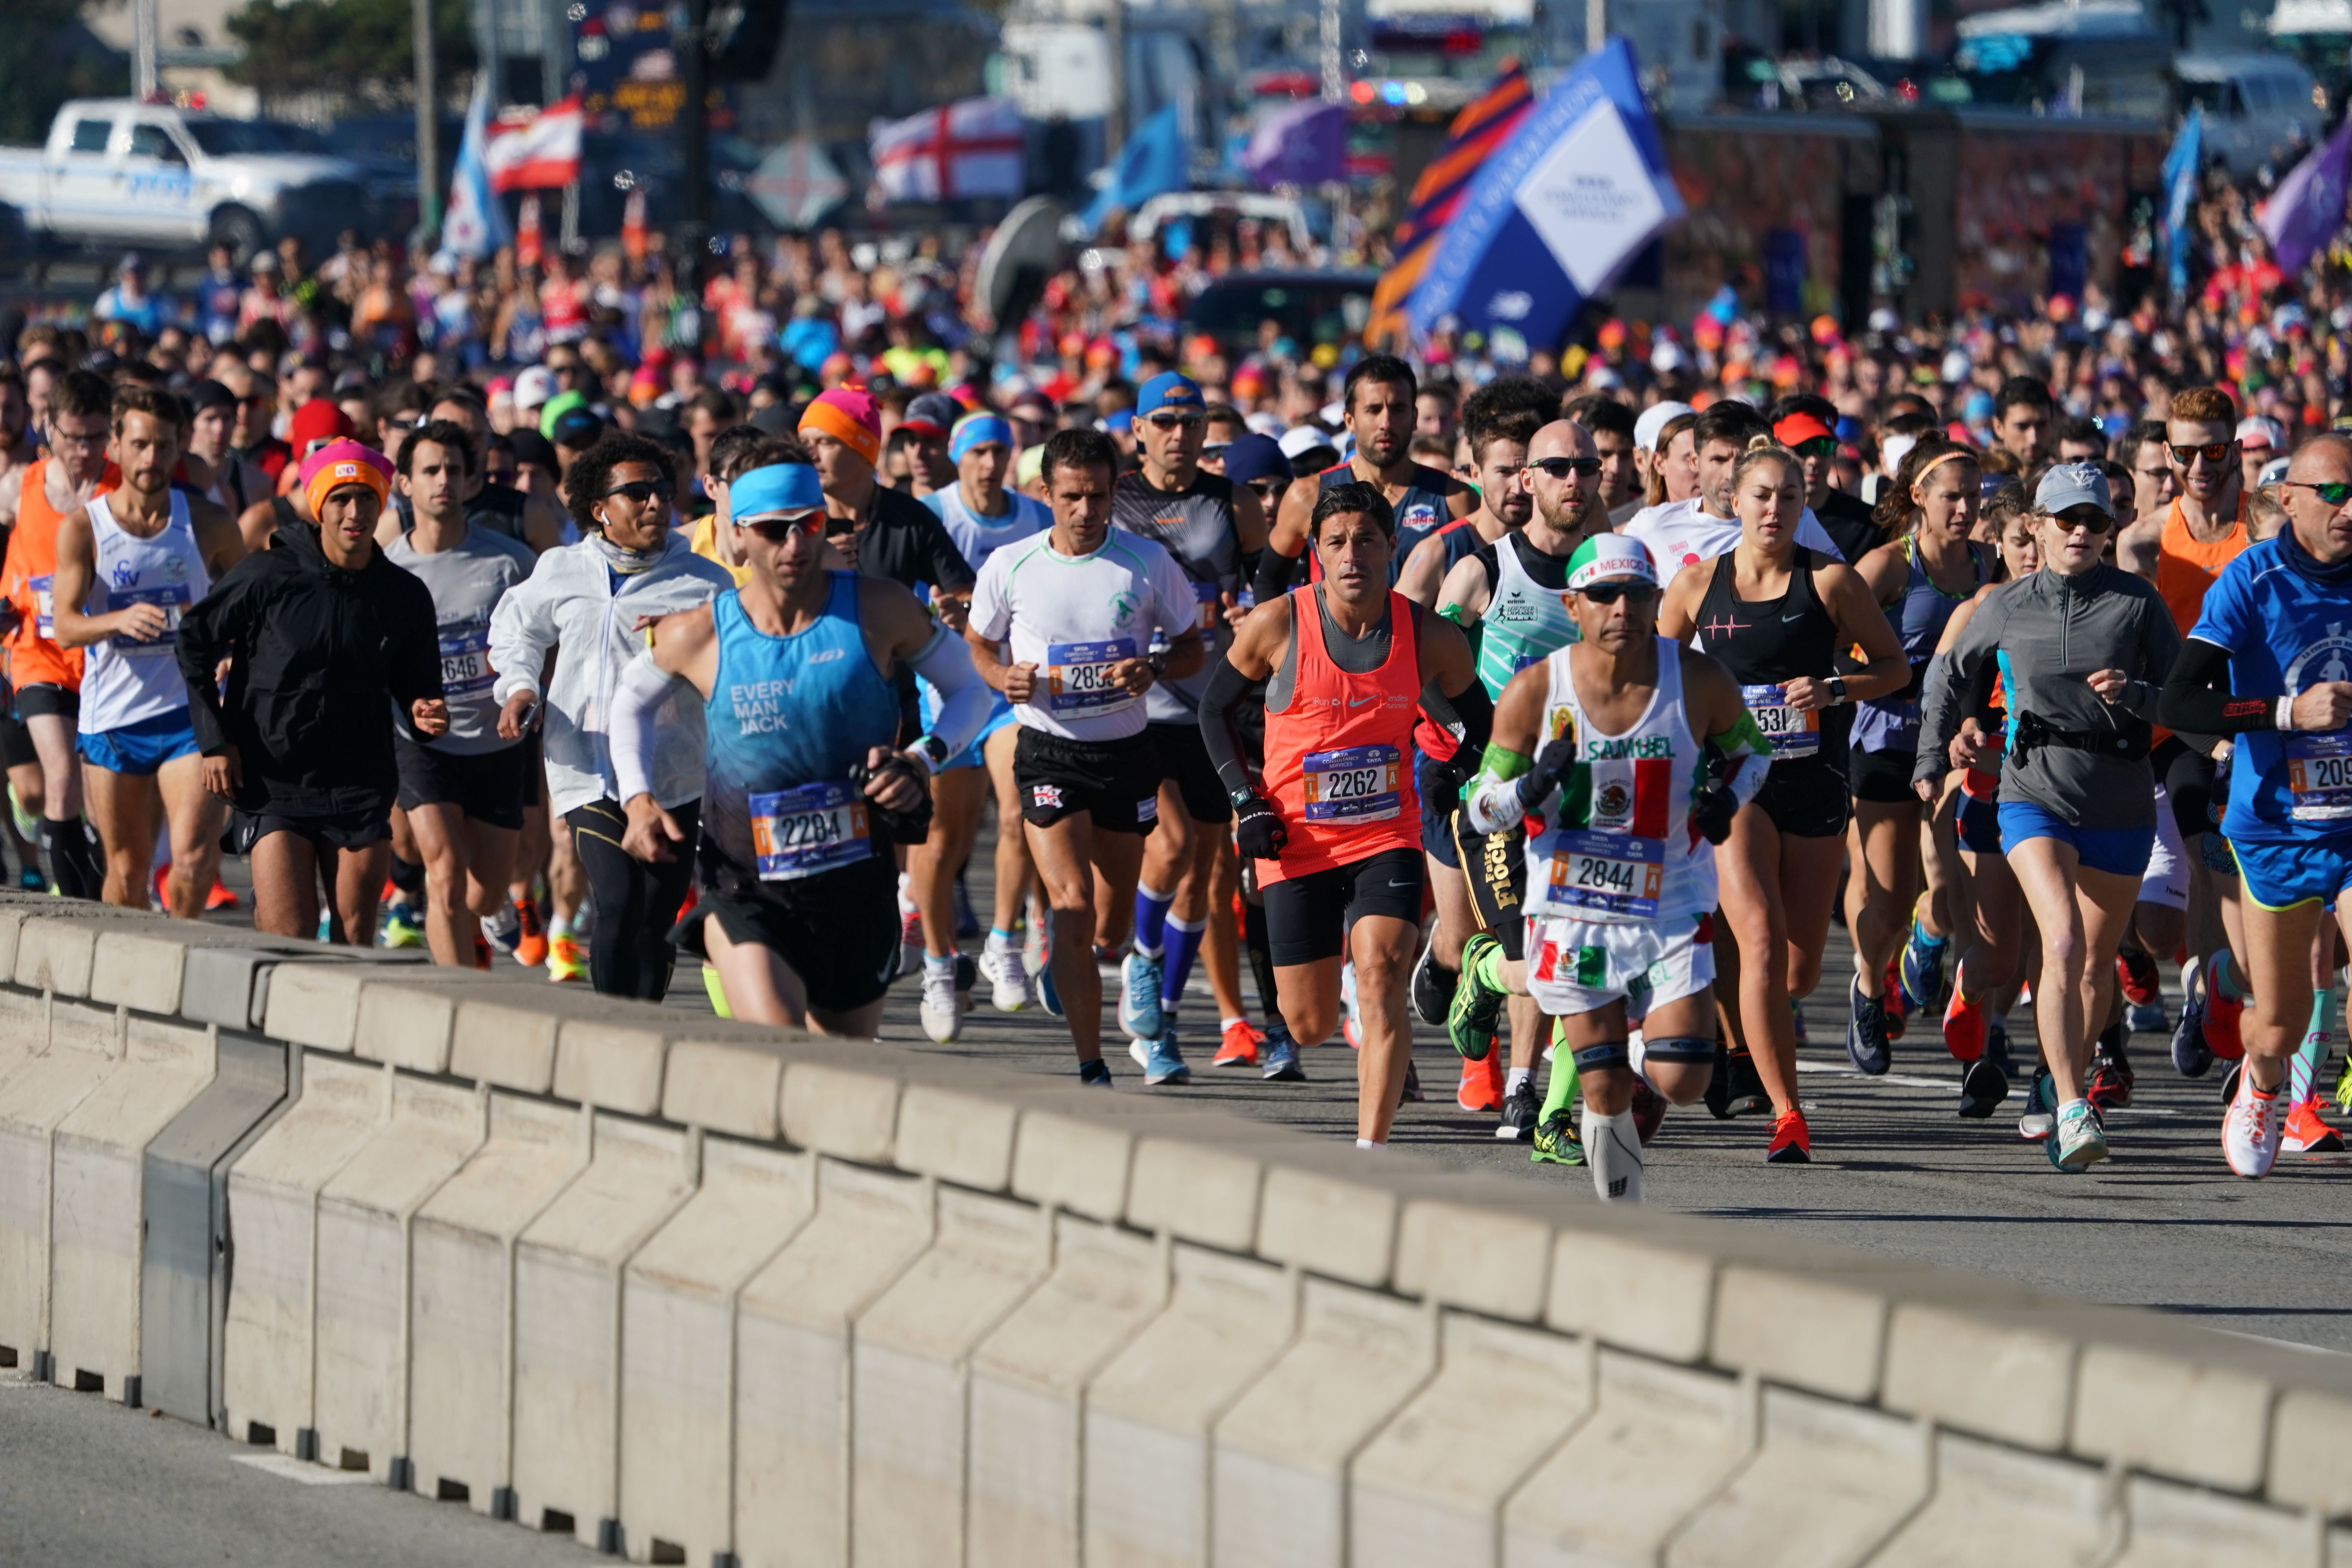 Runners take part in the 47th running of the New York City Marathon on November 4, 2018 in New York.